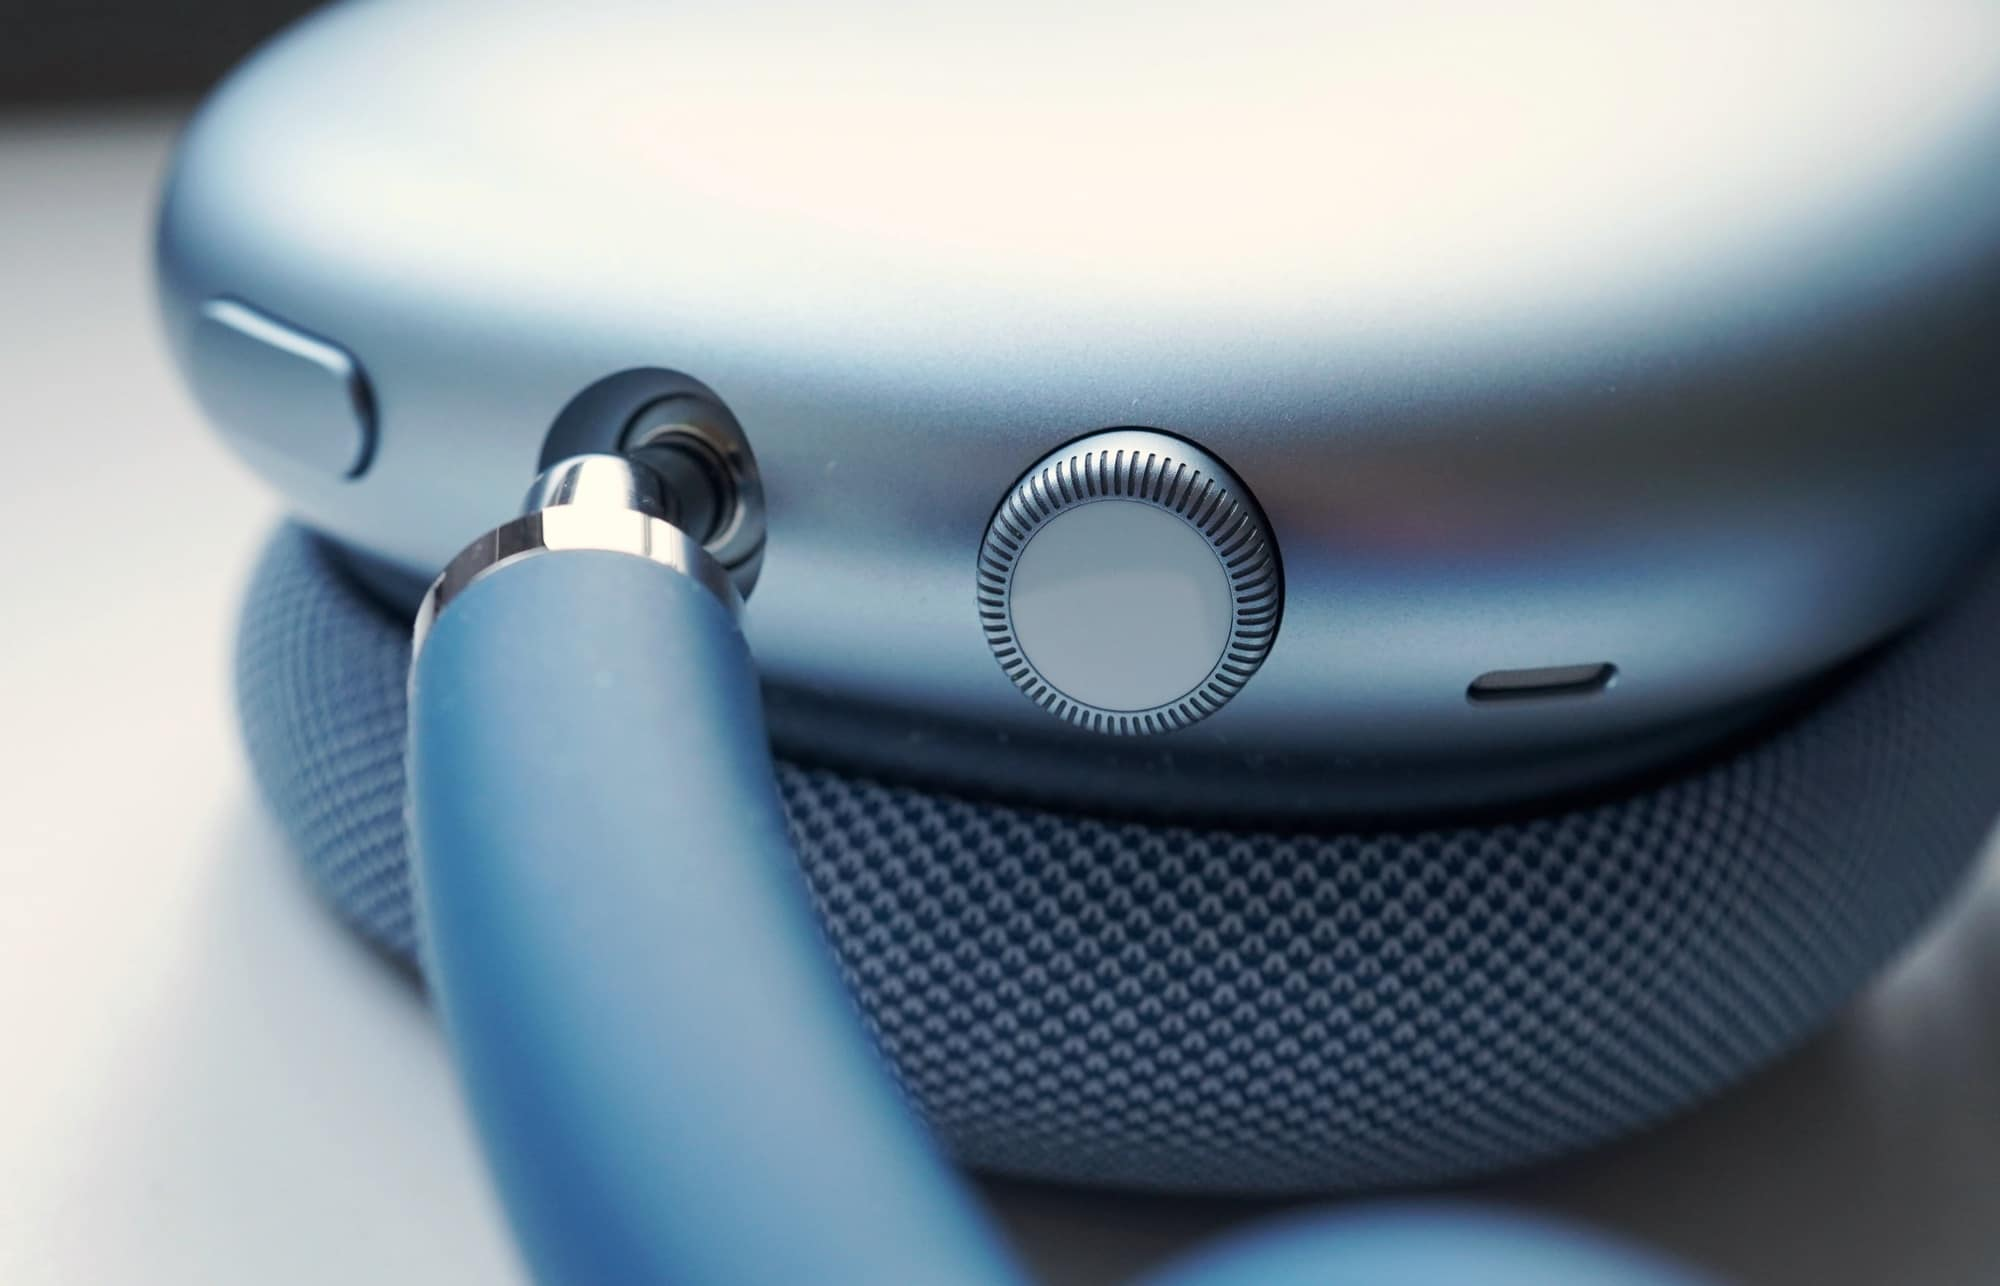 A close-up of the AirPods Max controls